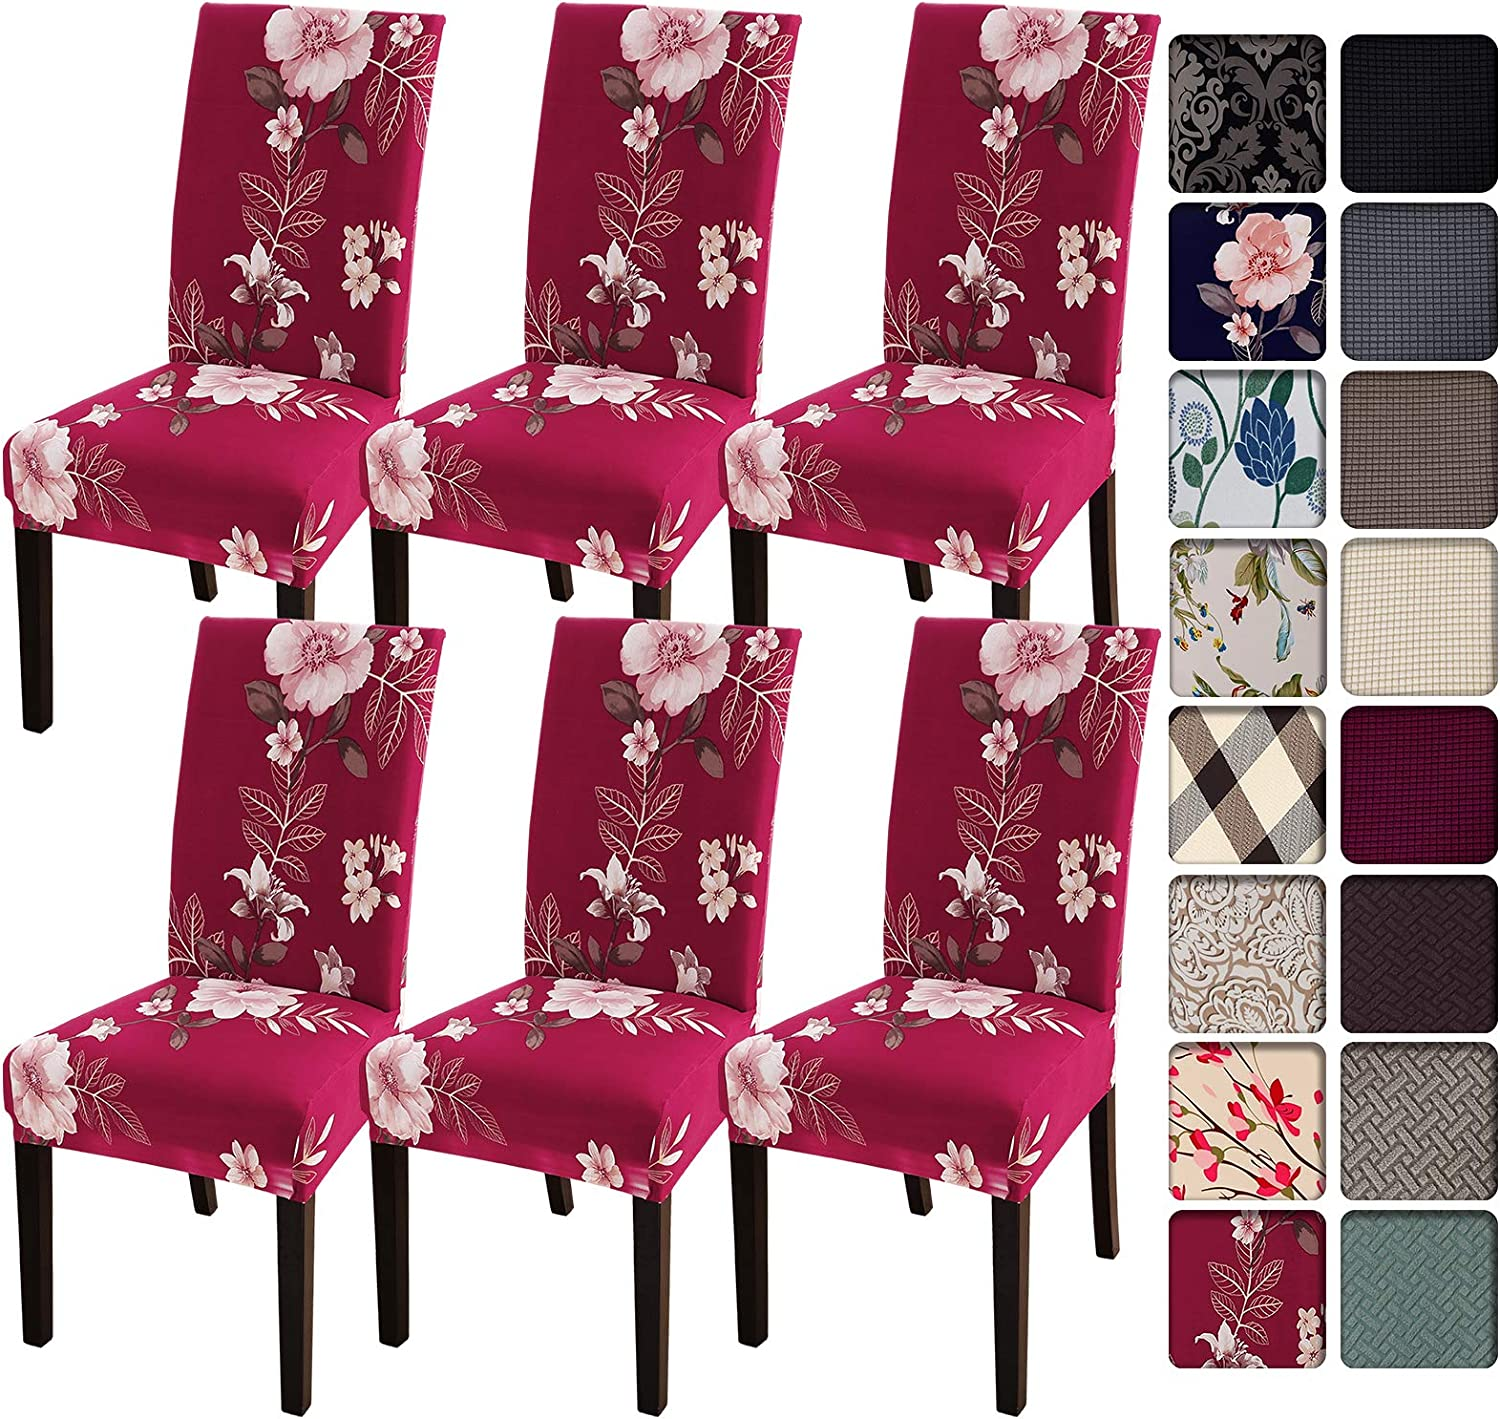 SearchI Max 64% OFF Dining Today's only Room Chair Covers Slipcovers Spandex 6 Su of Set